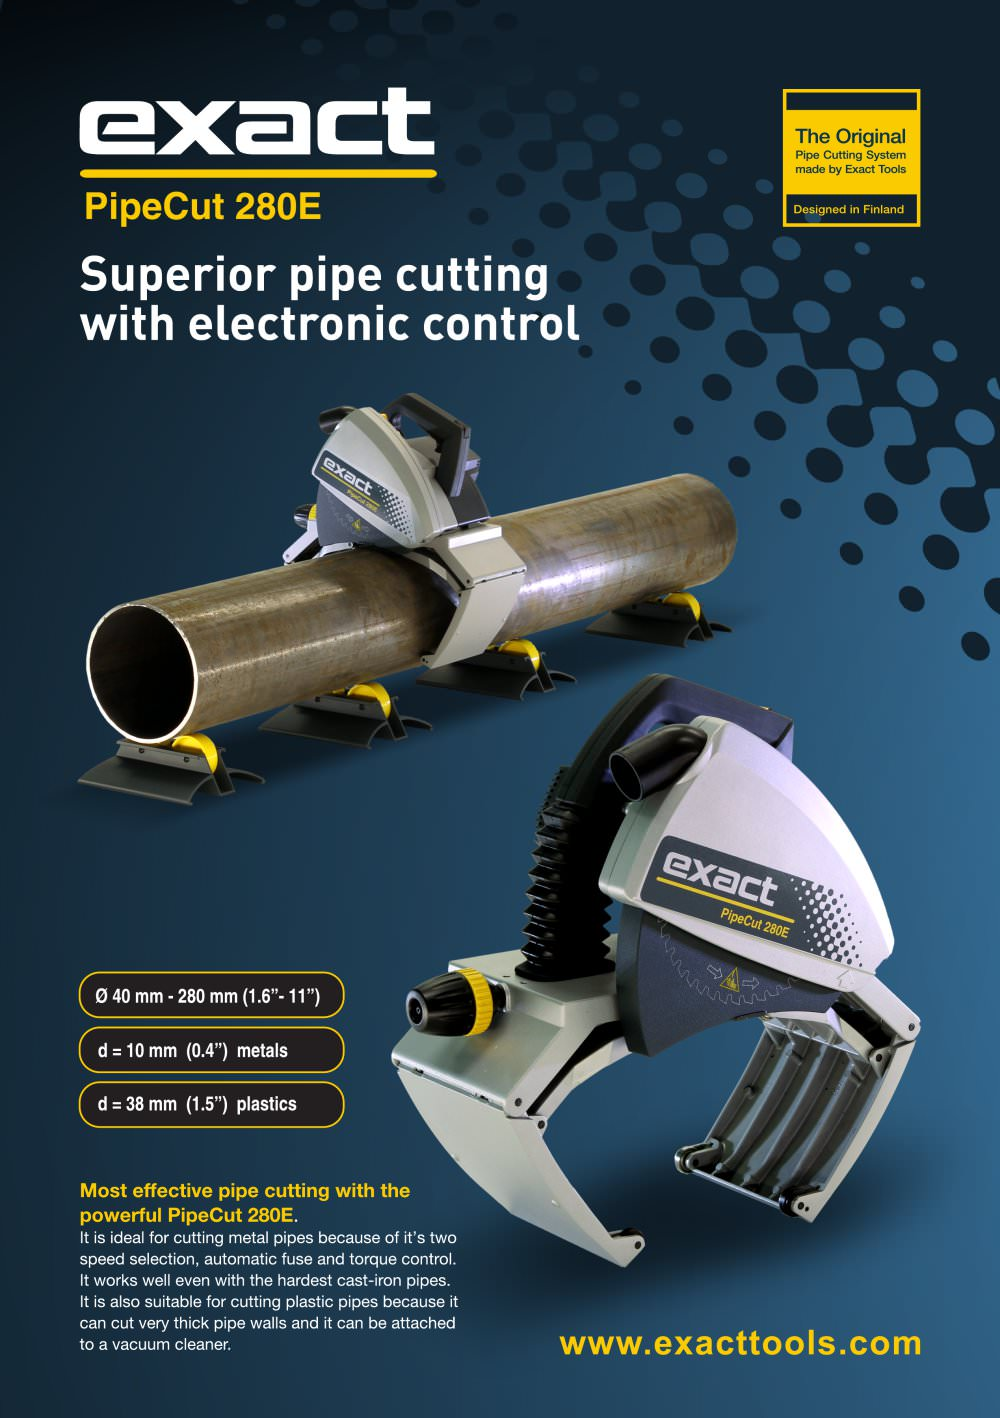 PipeCut 280E - 1 / 2 Pages  sc 1 st  Catalogues Directindustry & PipeCut 280E - Exact Tools Oy - PDF Catalogue | Technical ...